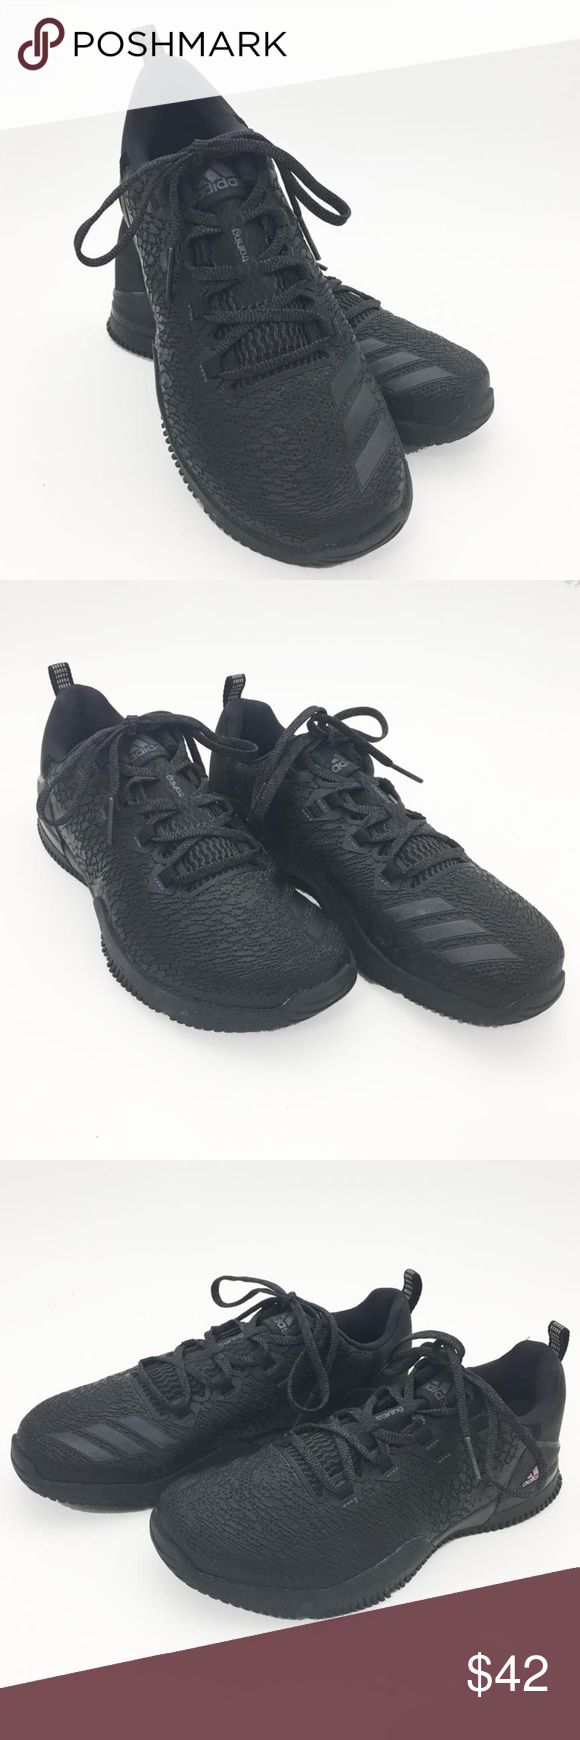 Adidas CrazyPower Cross Trainer Shoes